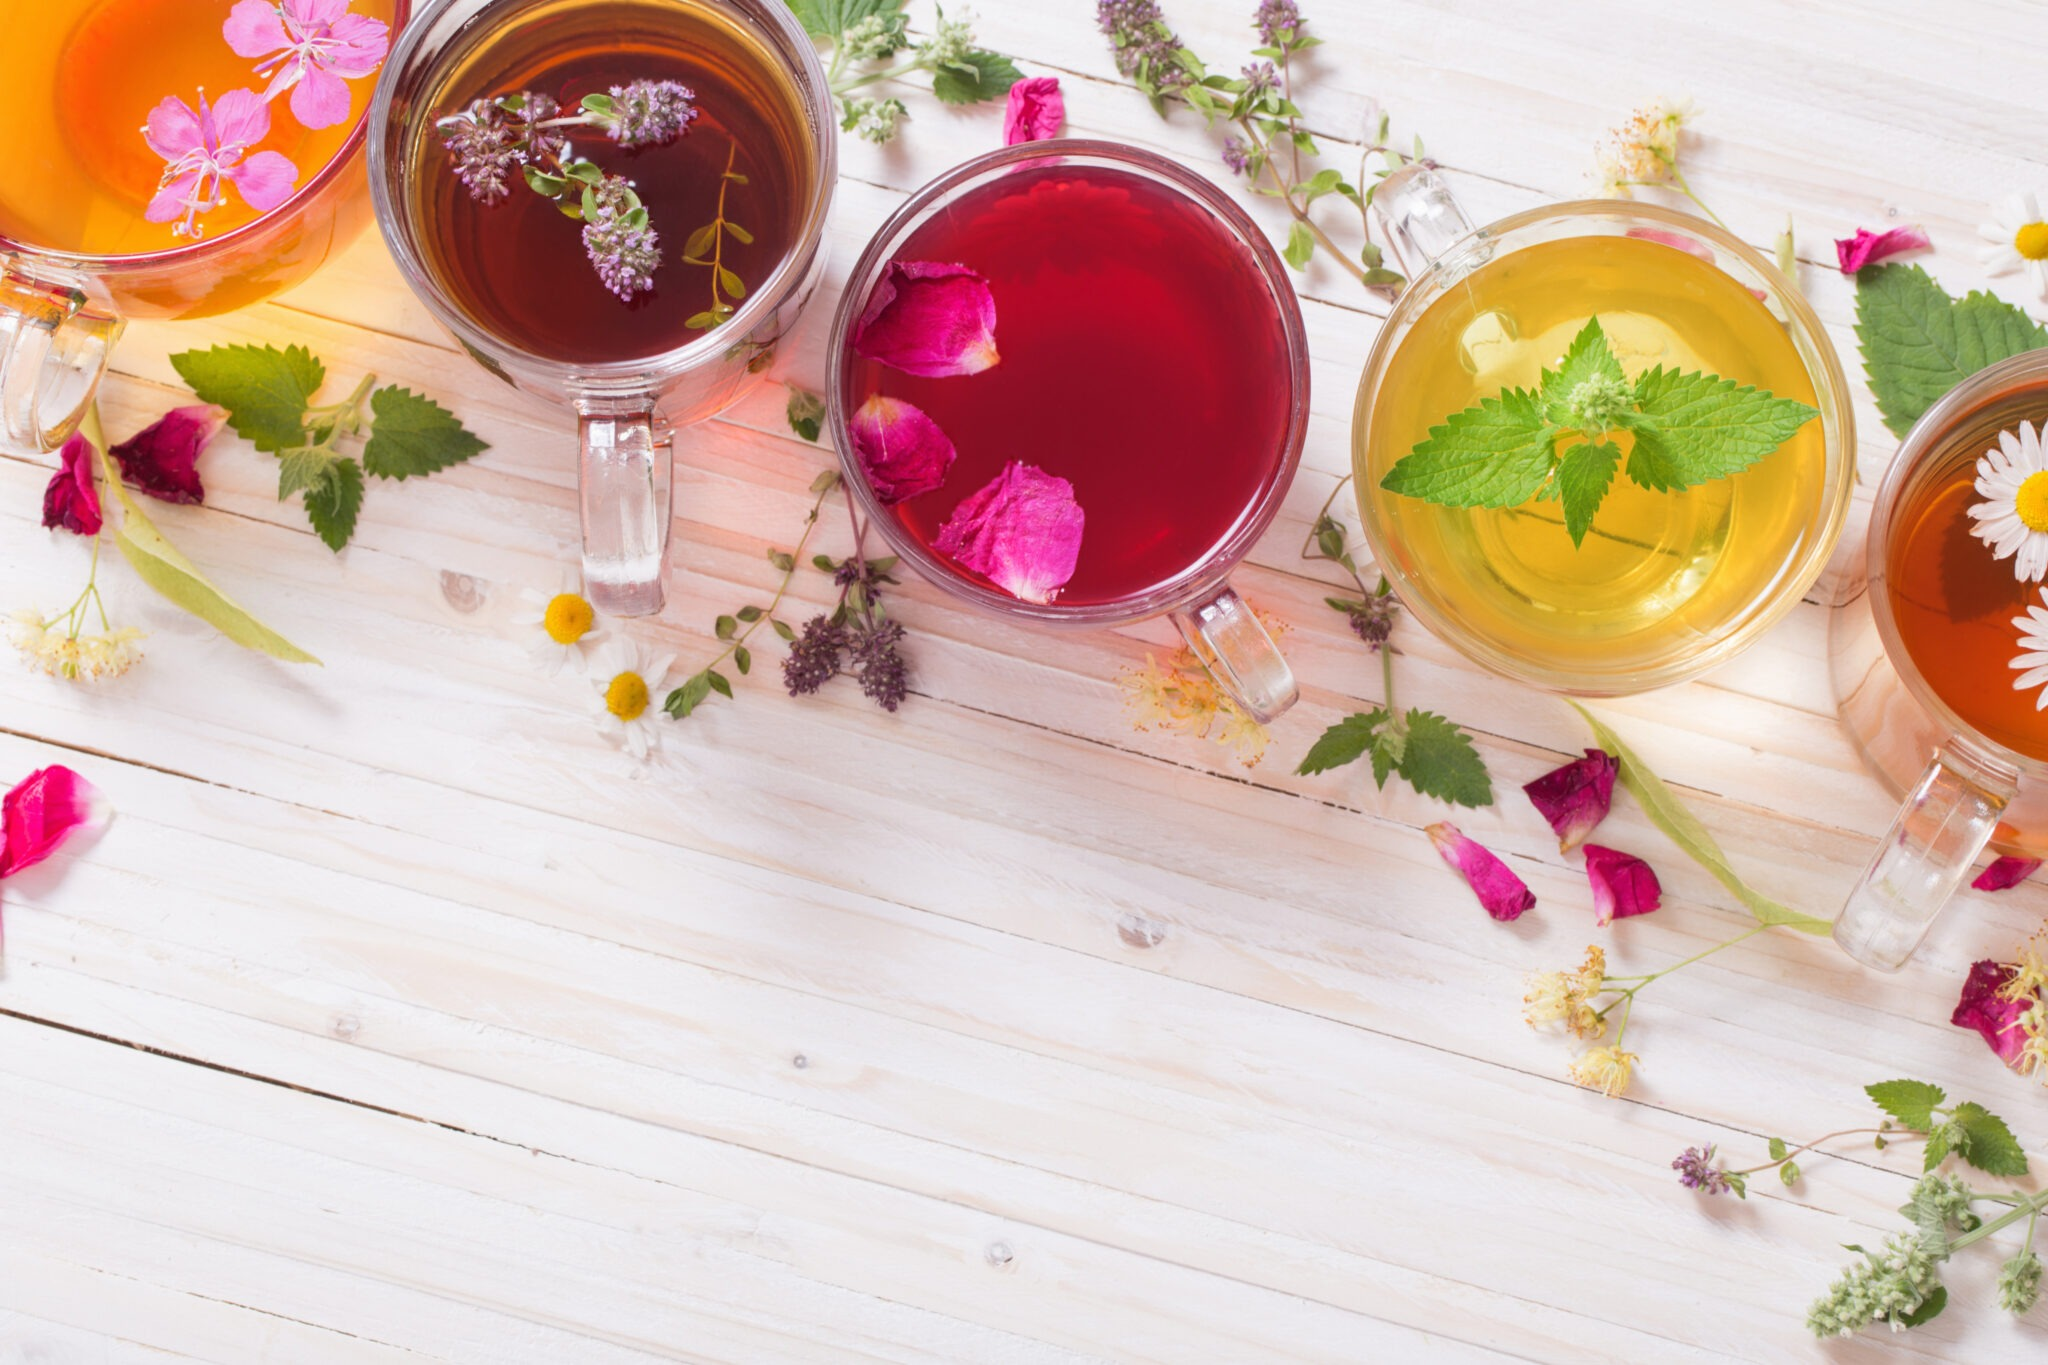 Benefits of herbal tea are Energy boosting, Relaxing, Provide antioxidants, Healthy heart, Pain Relieving, Caffeine free, Sleep-inducing